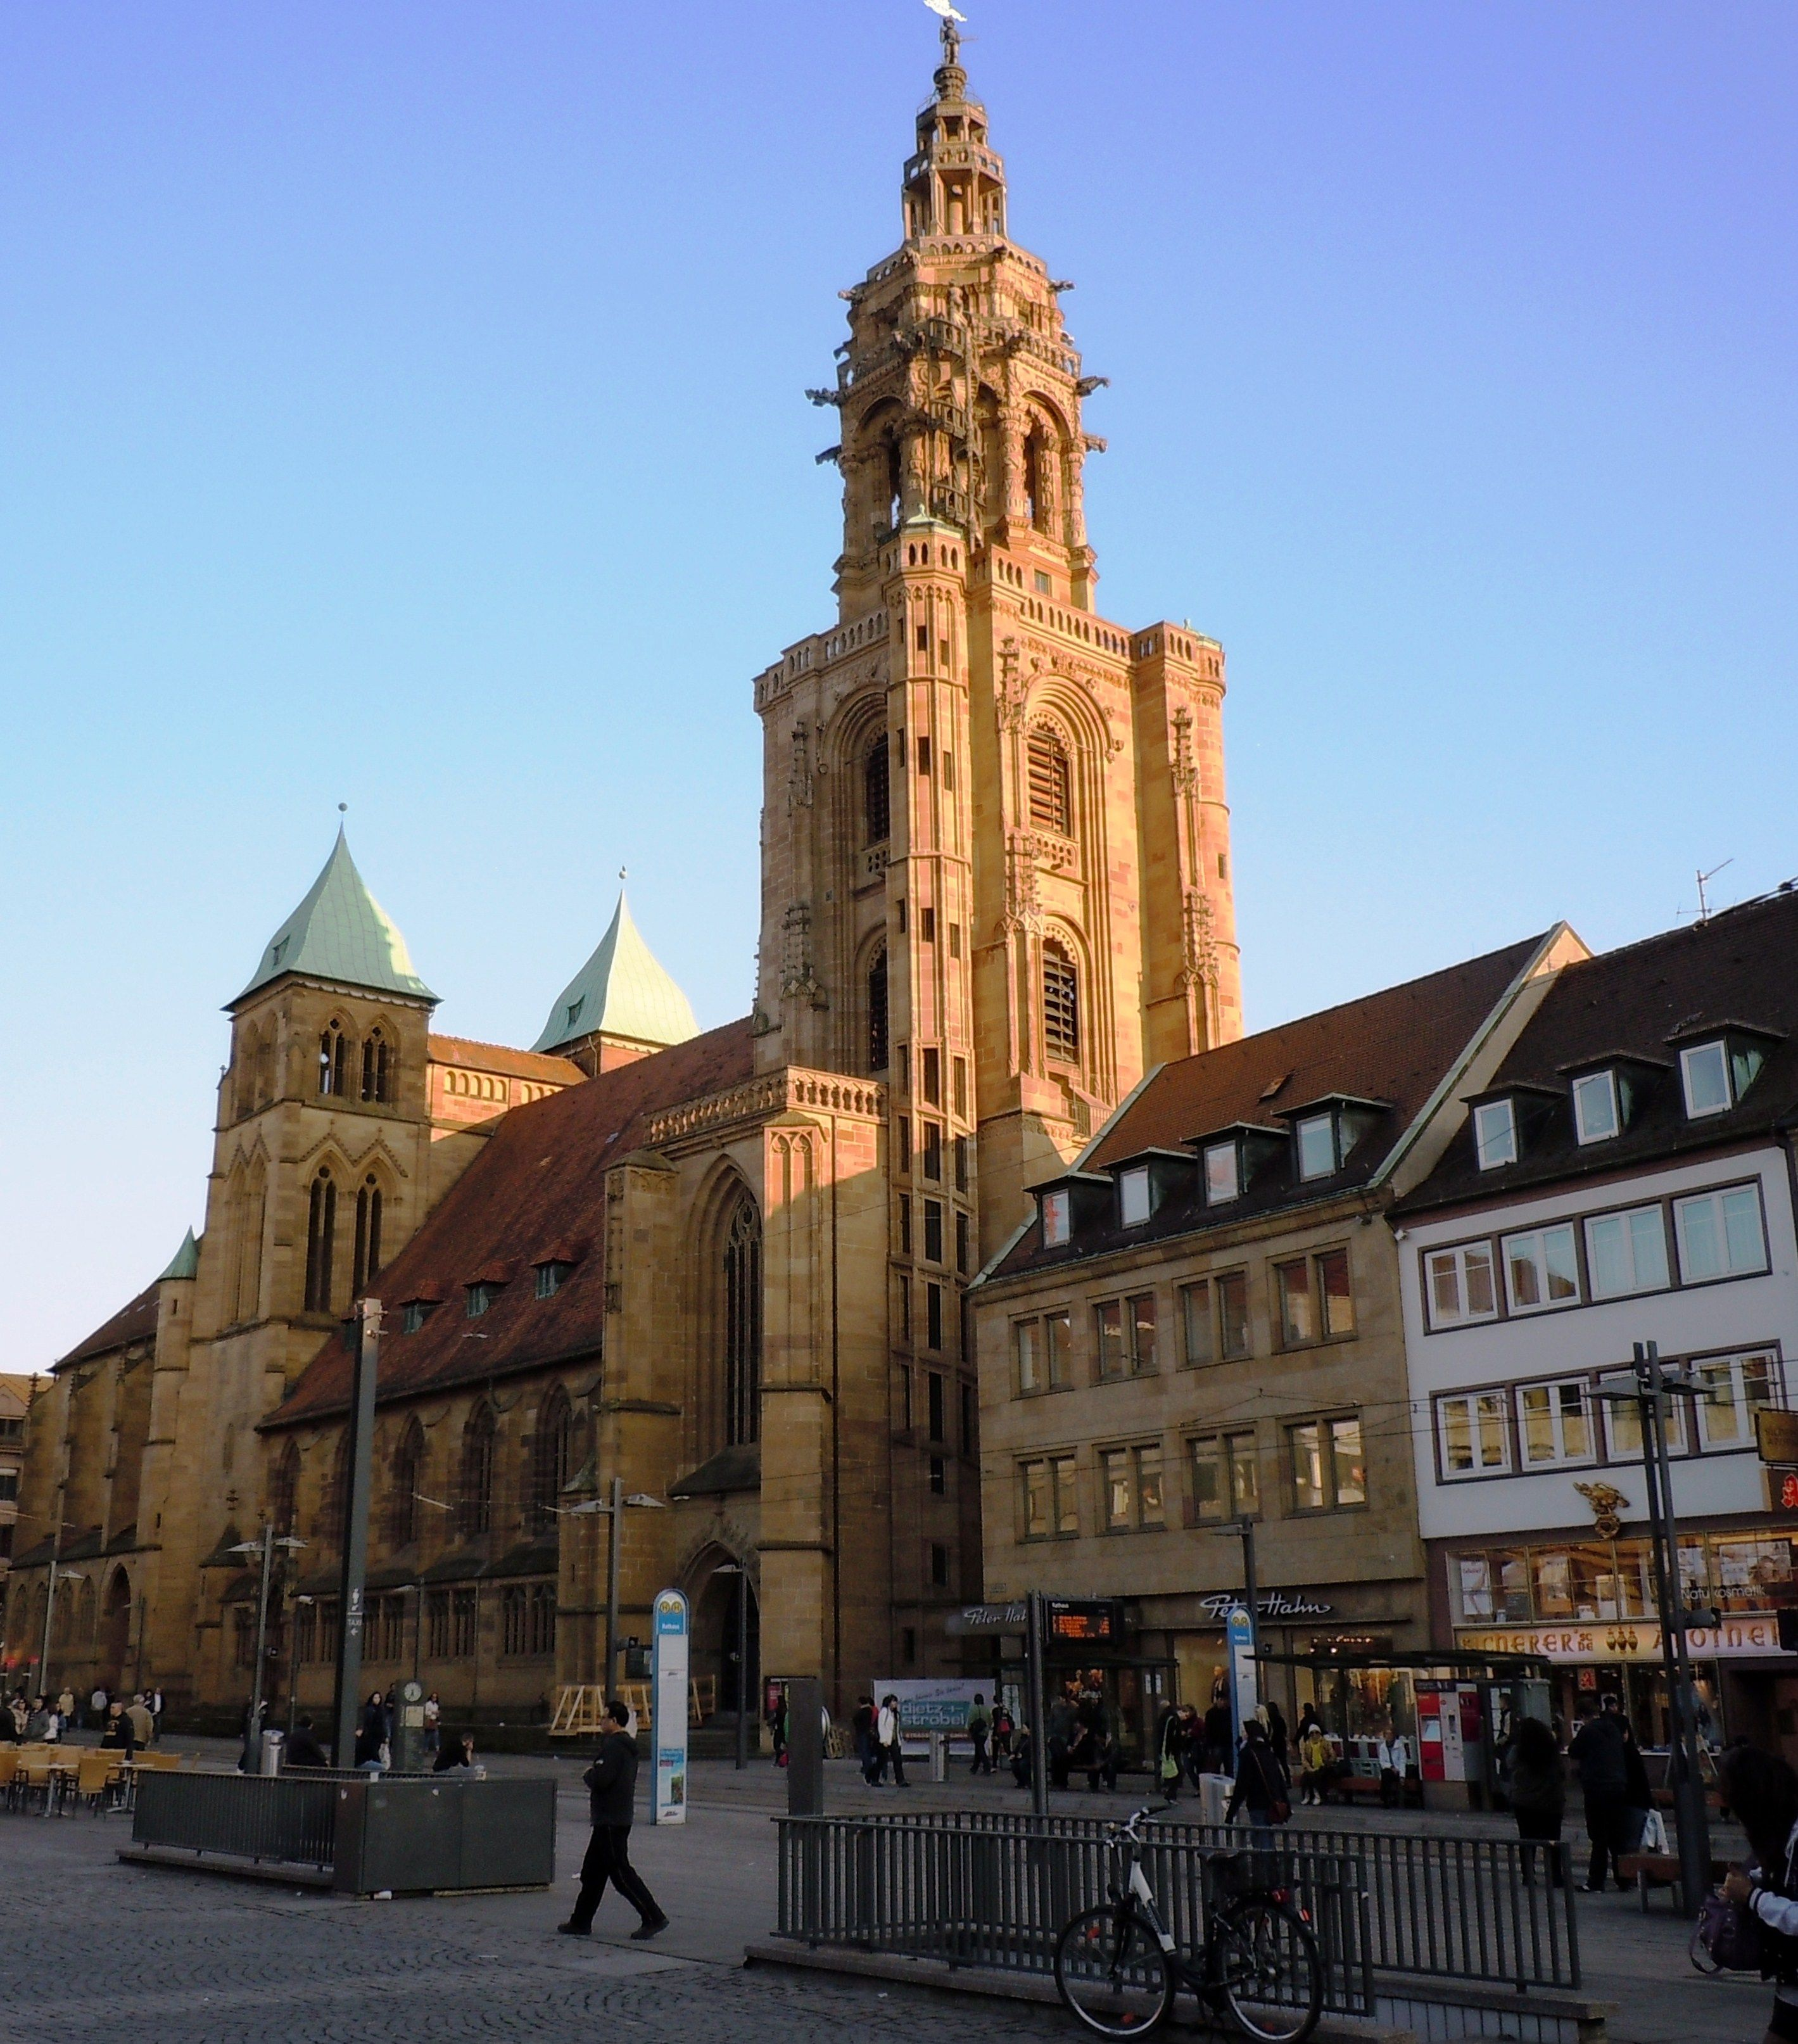 Town Square Heilbronn Germany Just Across The Street From My Hotel Germany Europe Travel Germany Travel